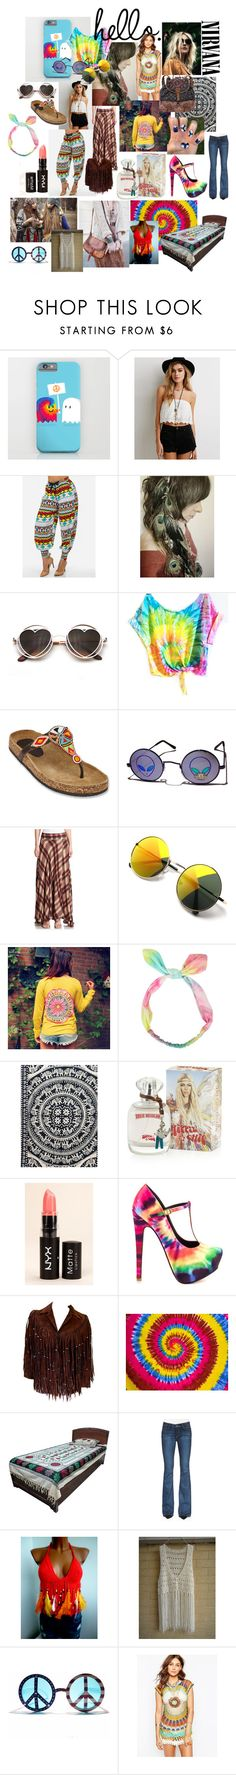 """""""Hippie style"""" by mathilda-lindquist ❤ liked on Polyvore featuring Matisse, Retrò, Haute Hippie, True Religion, NYX, TaylorSays, Bohemia, Paige Denim, INDIE HAIR and Spiritual Hippie"""